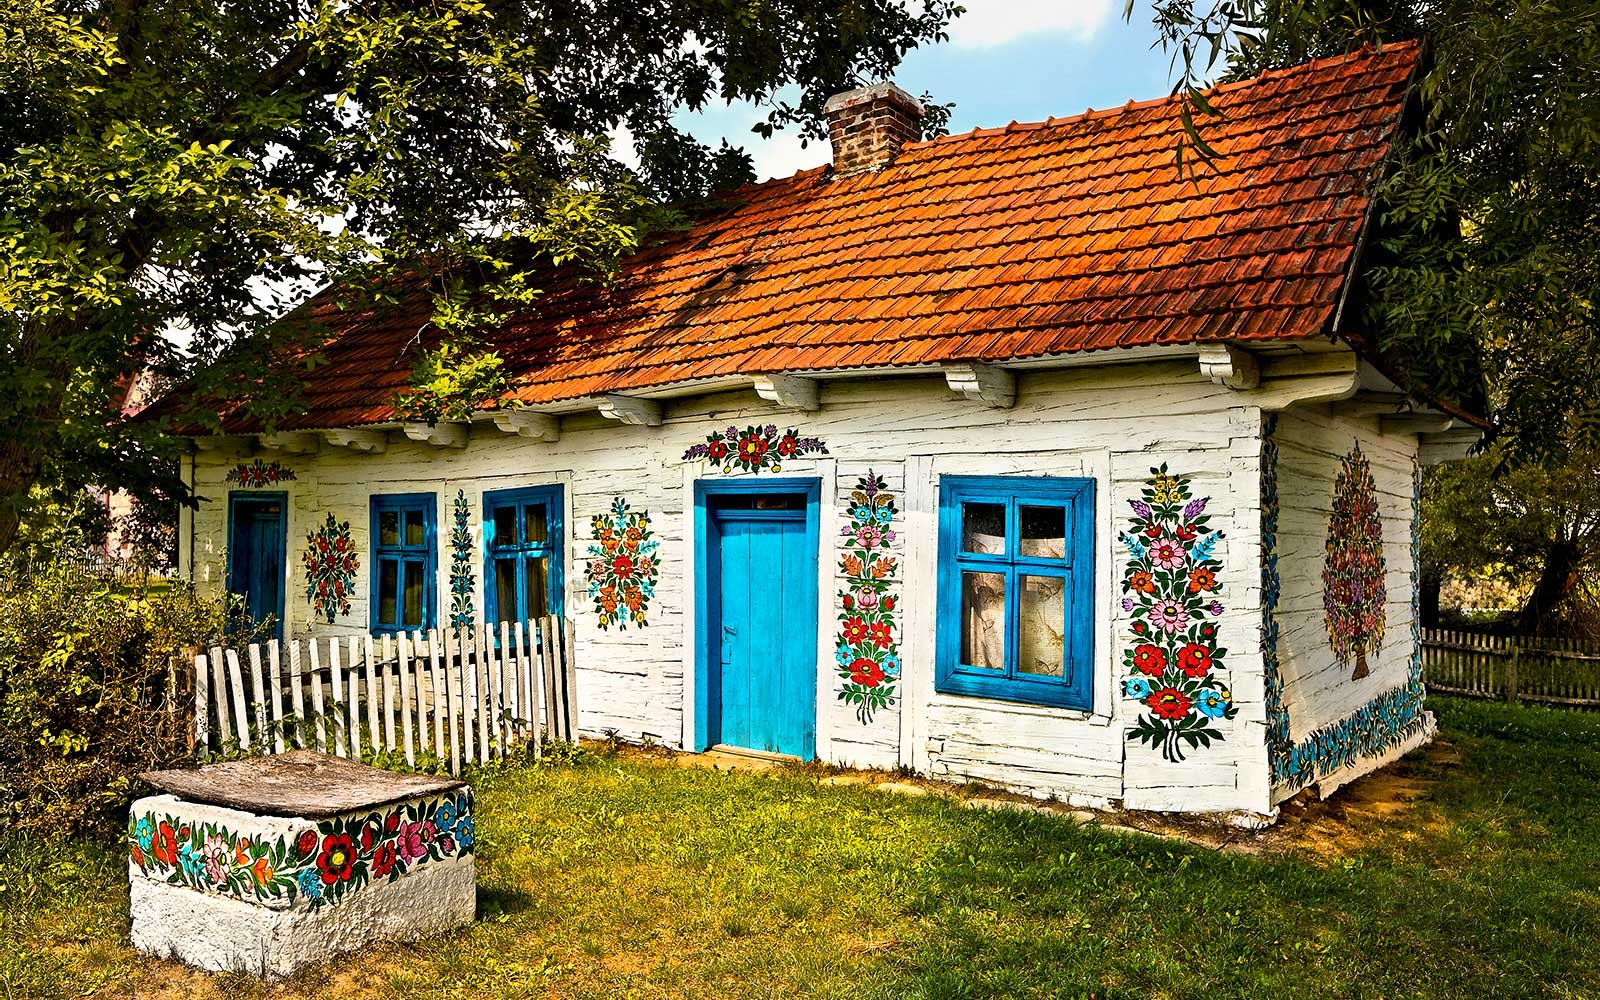 This polish village has been covered in flower paintings for Home pictures images